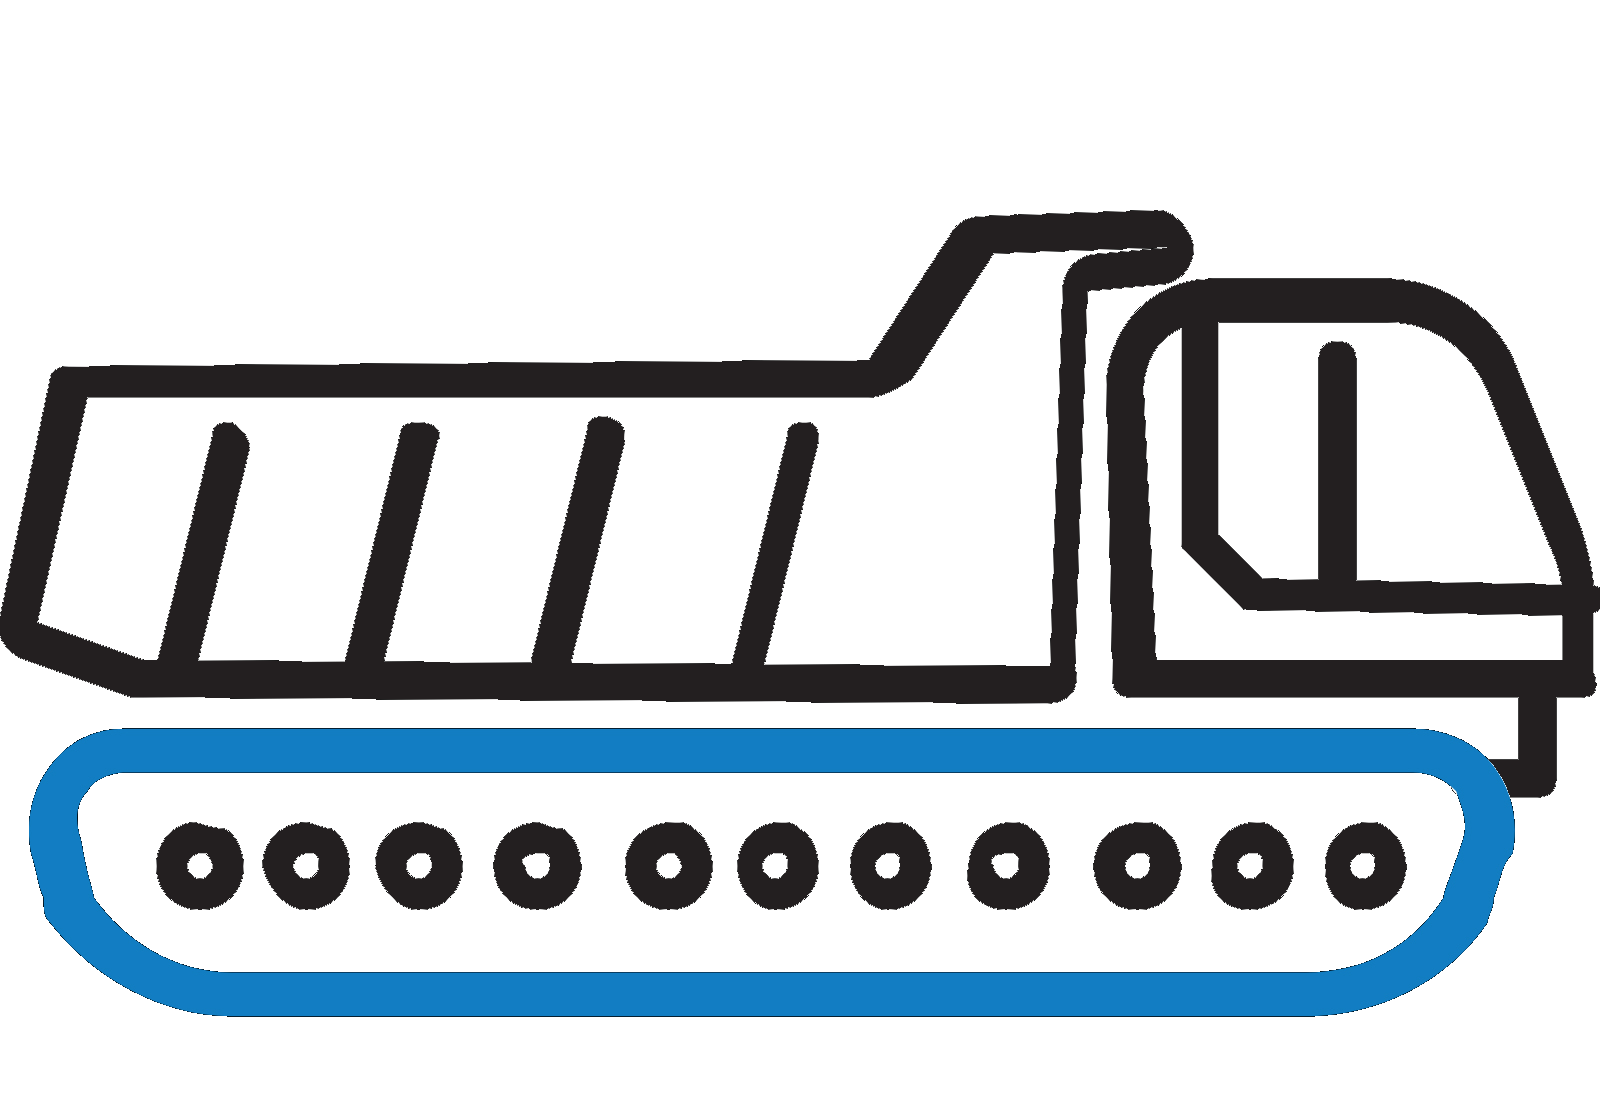 Rubber tracks and pads. Excavator clipart crawler